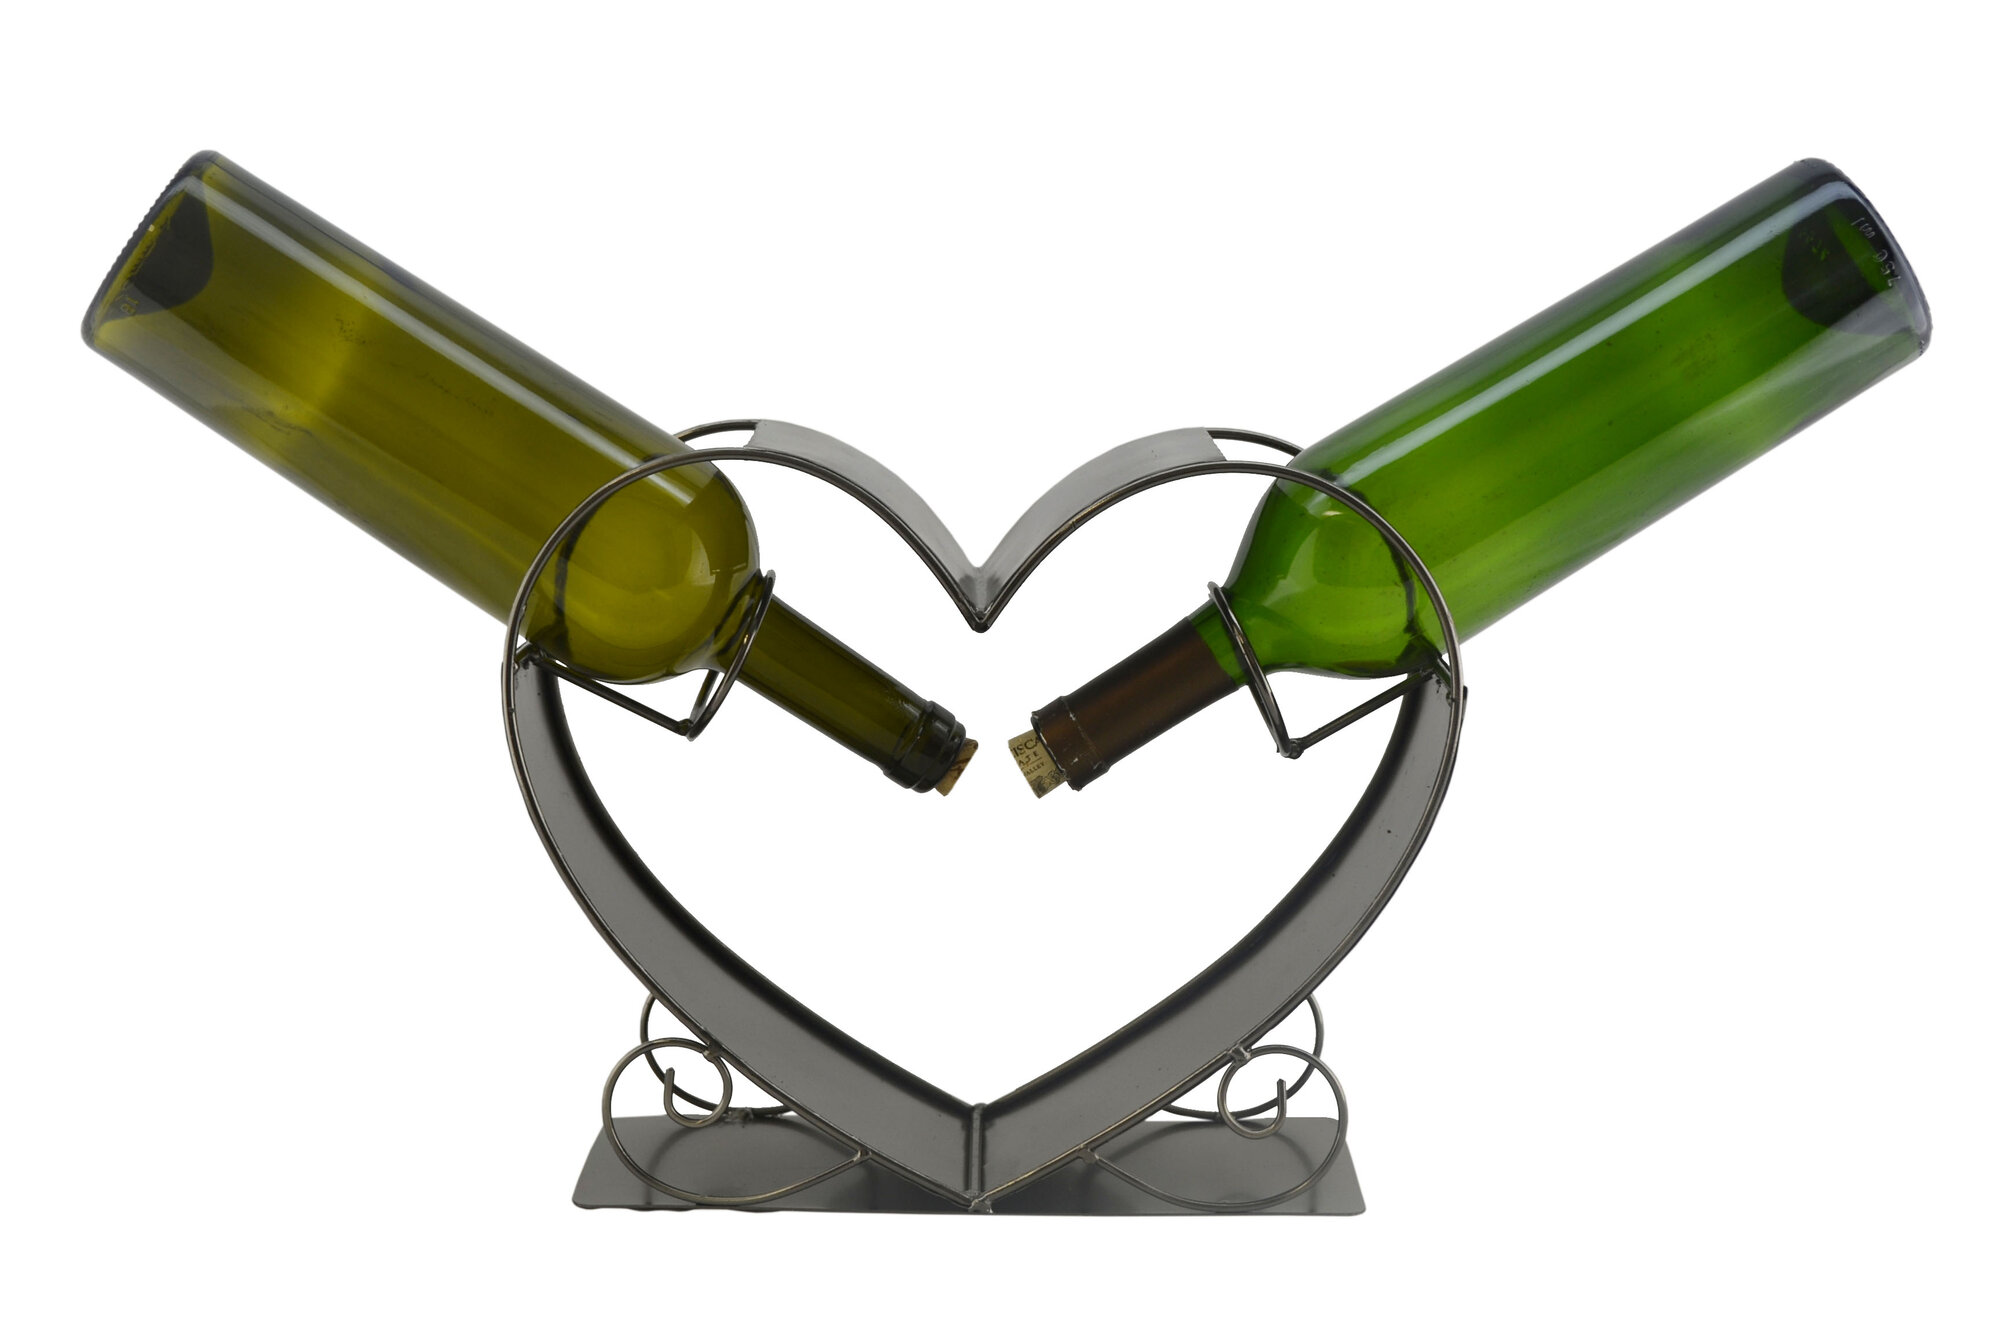 Three star im ex inc heart 2 bottle tabletop wine rack ebay - Wine rack shaped like wine bottle ...